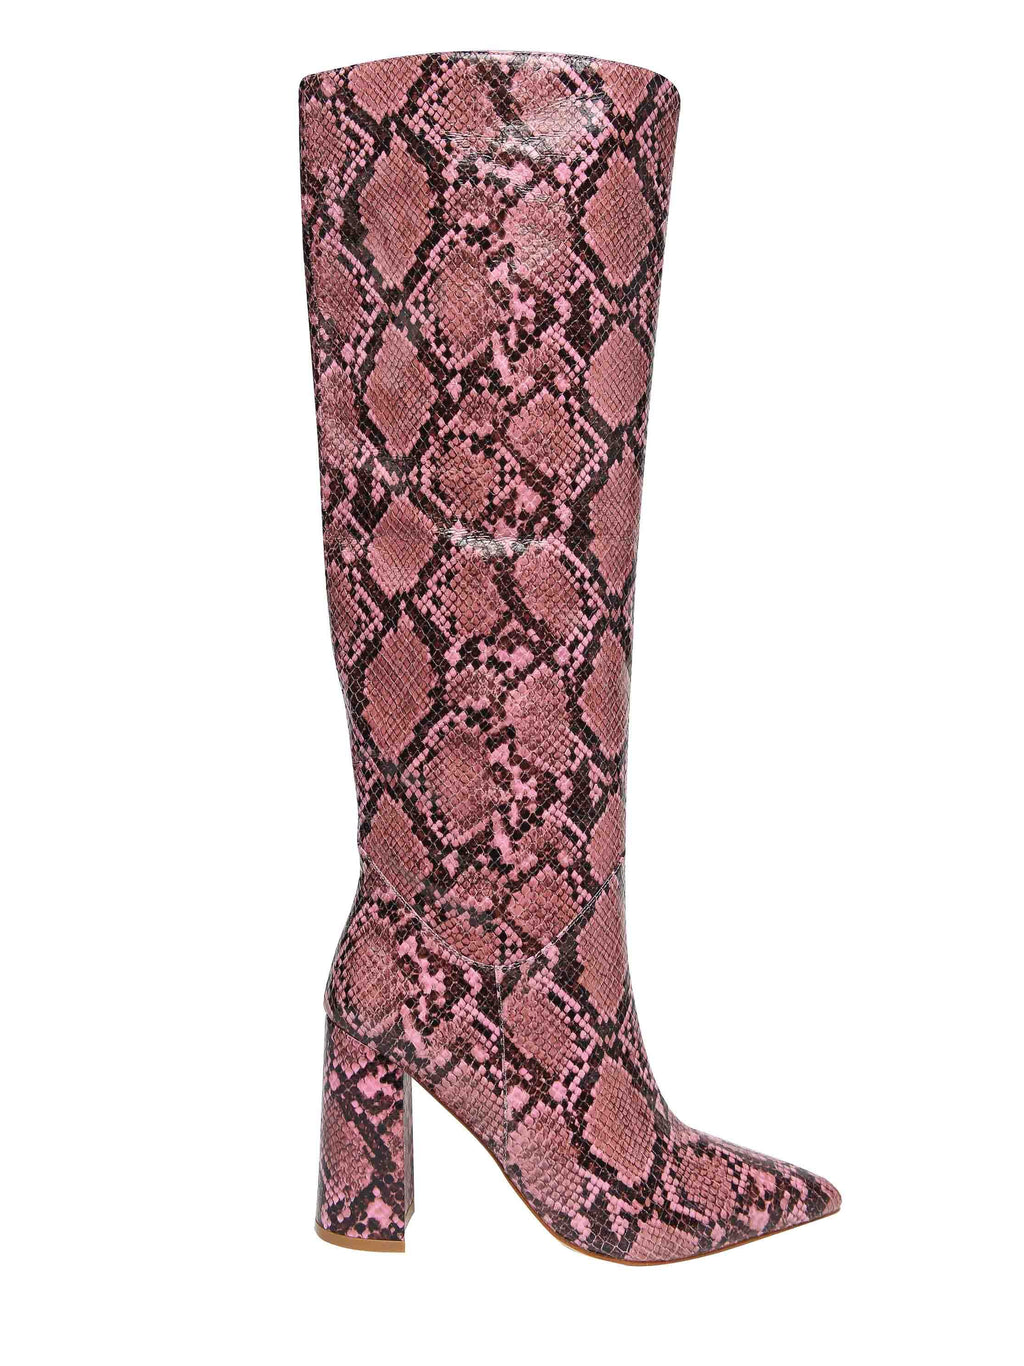 JEFFREY CAMPBELL Boot with animal print heel